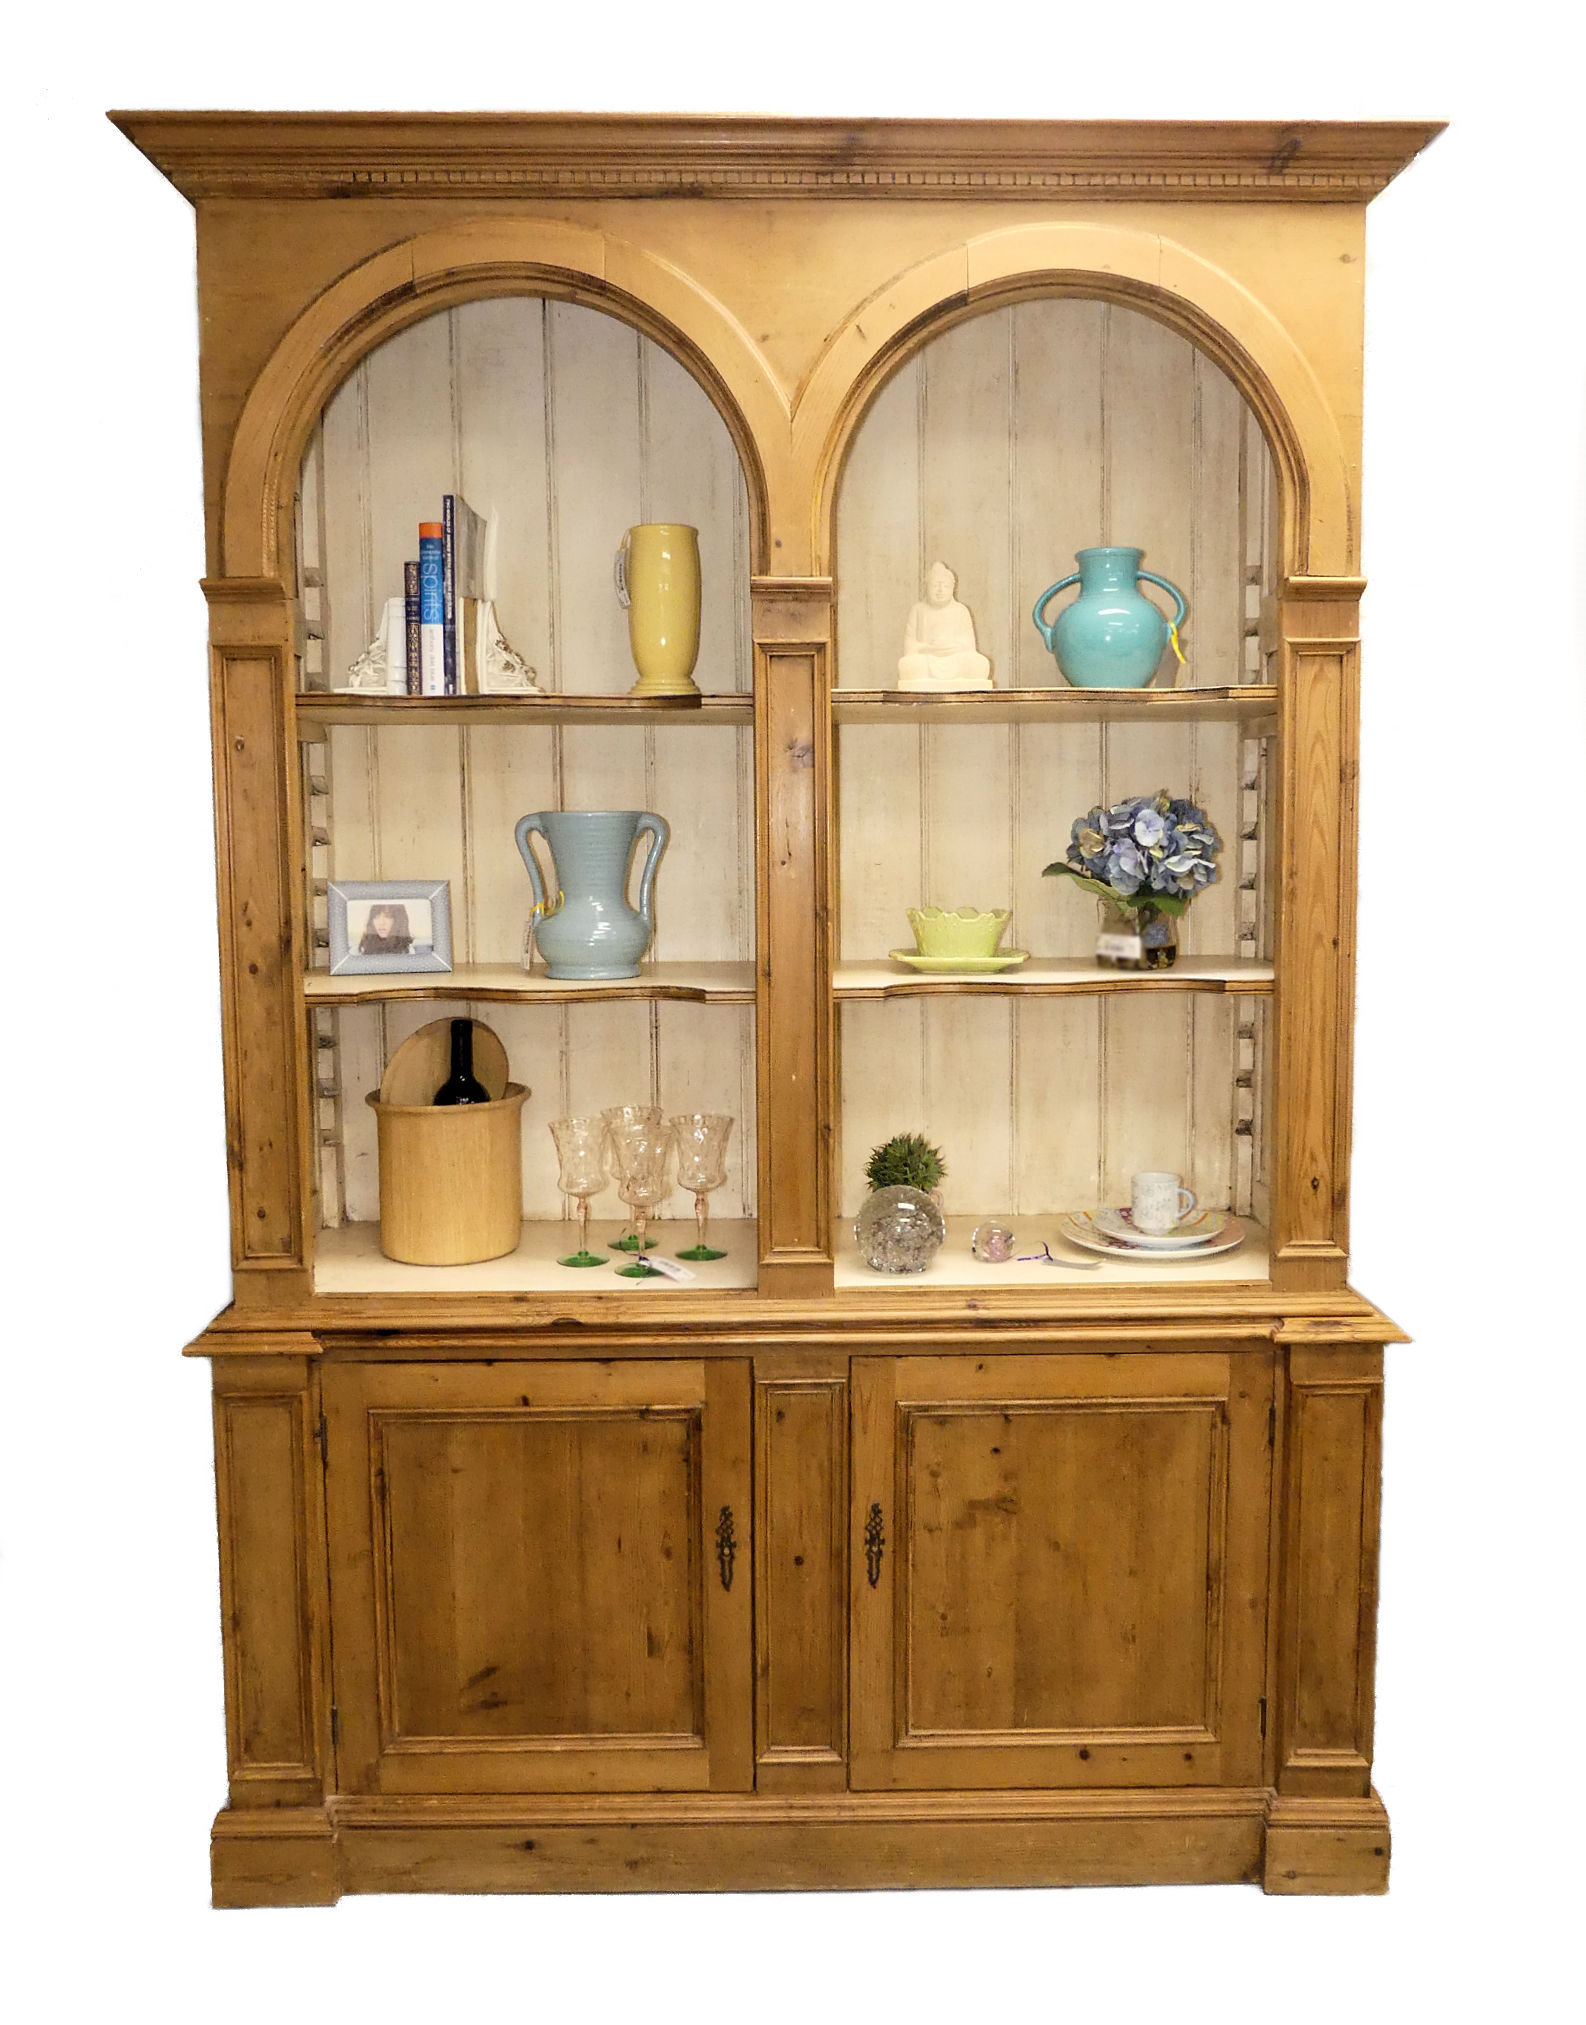 SOLD  ACP Home Interiors - Antiques & Country Pine Solid Pine Cabinet with Hutch